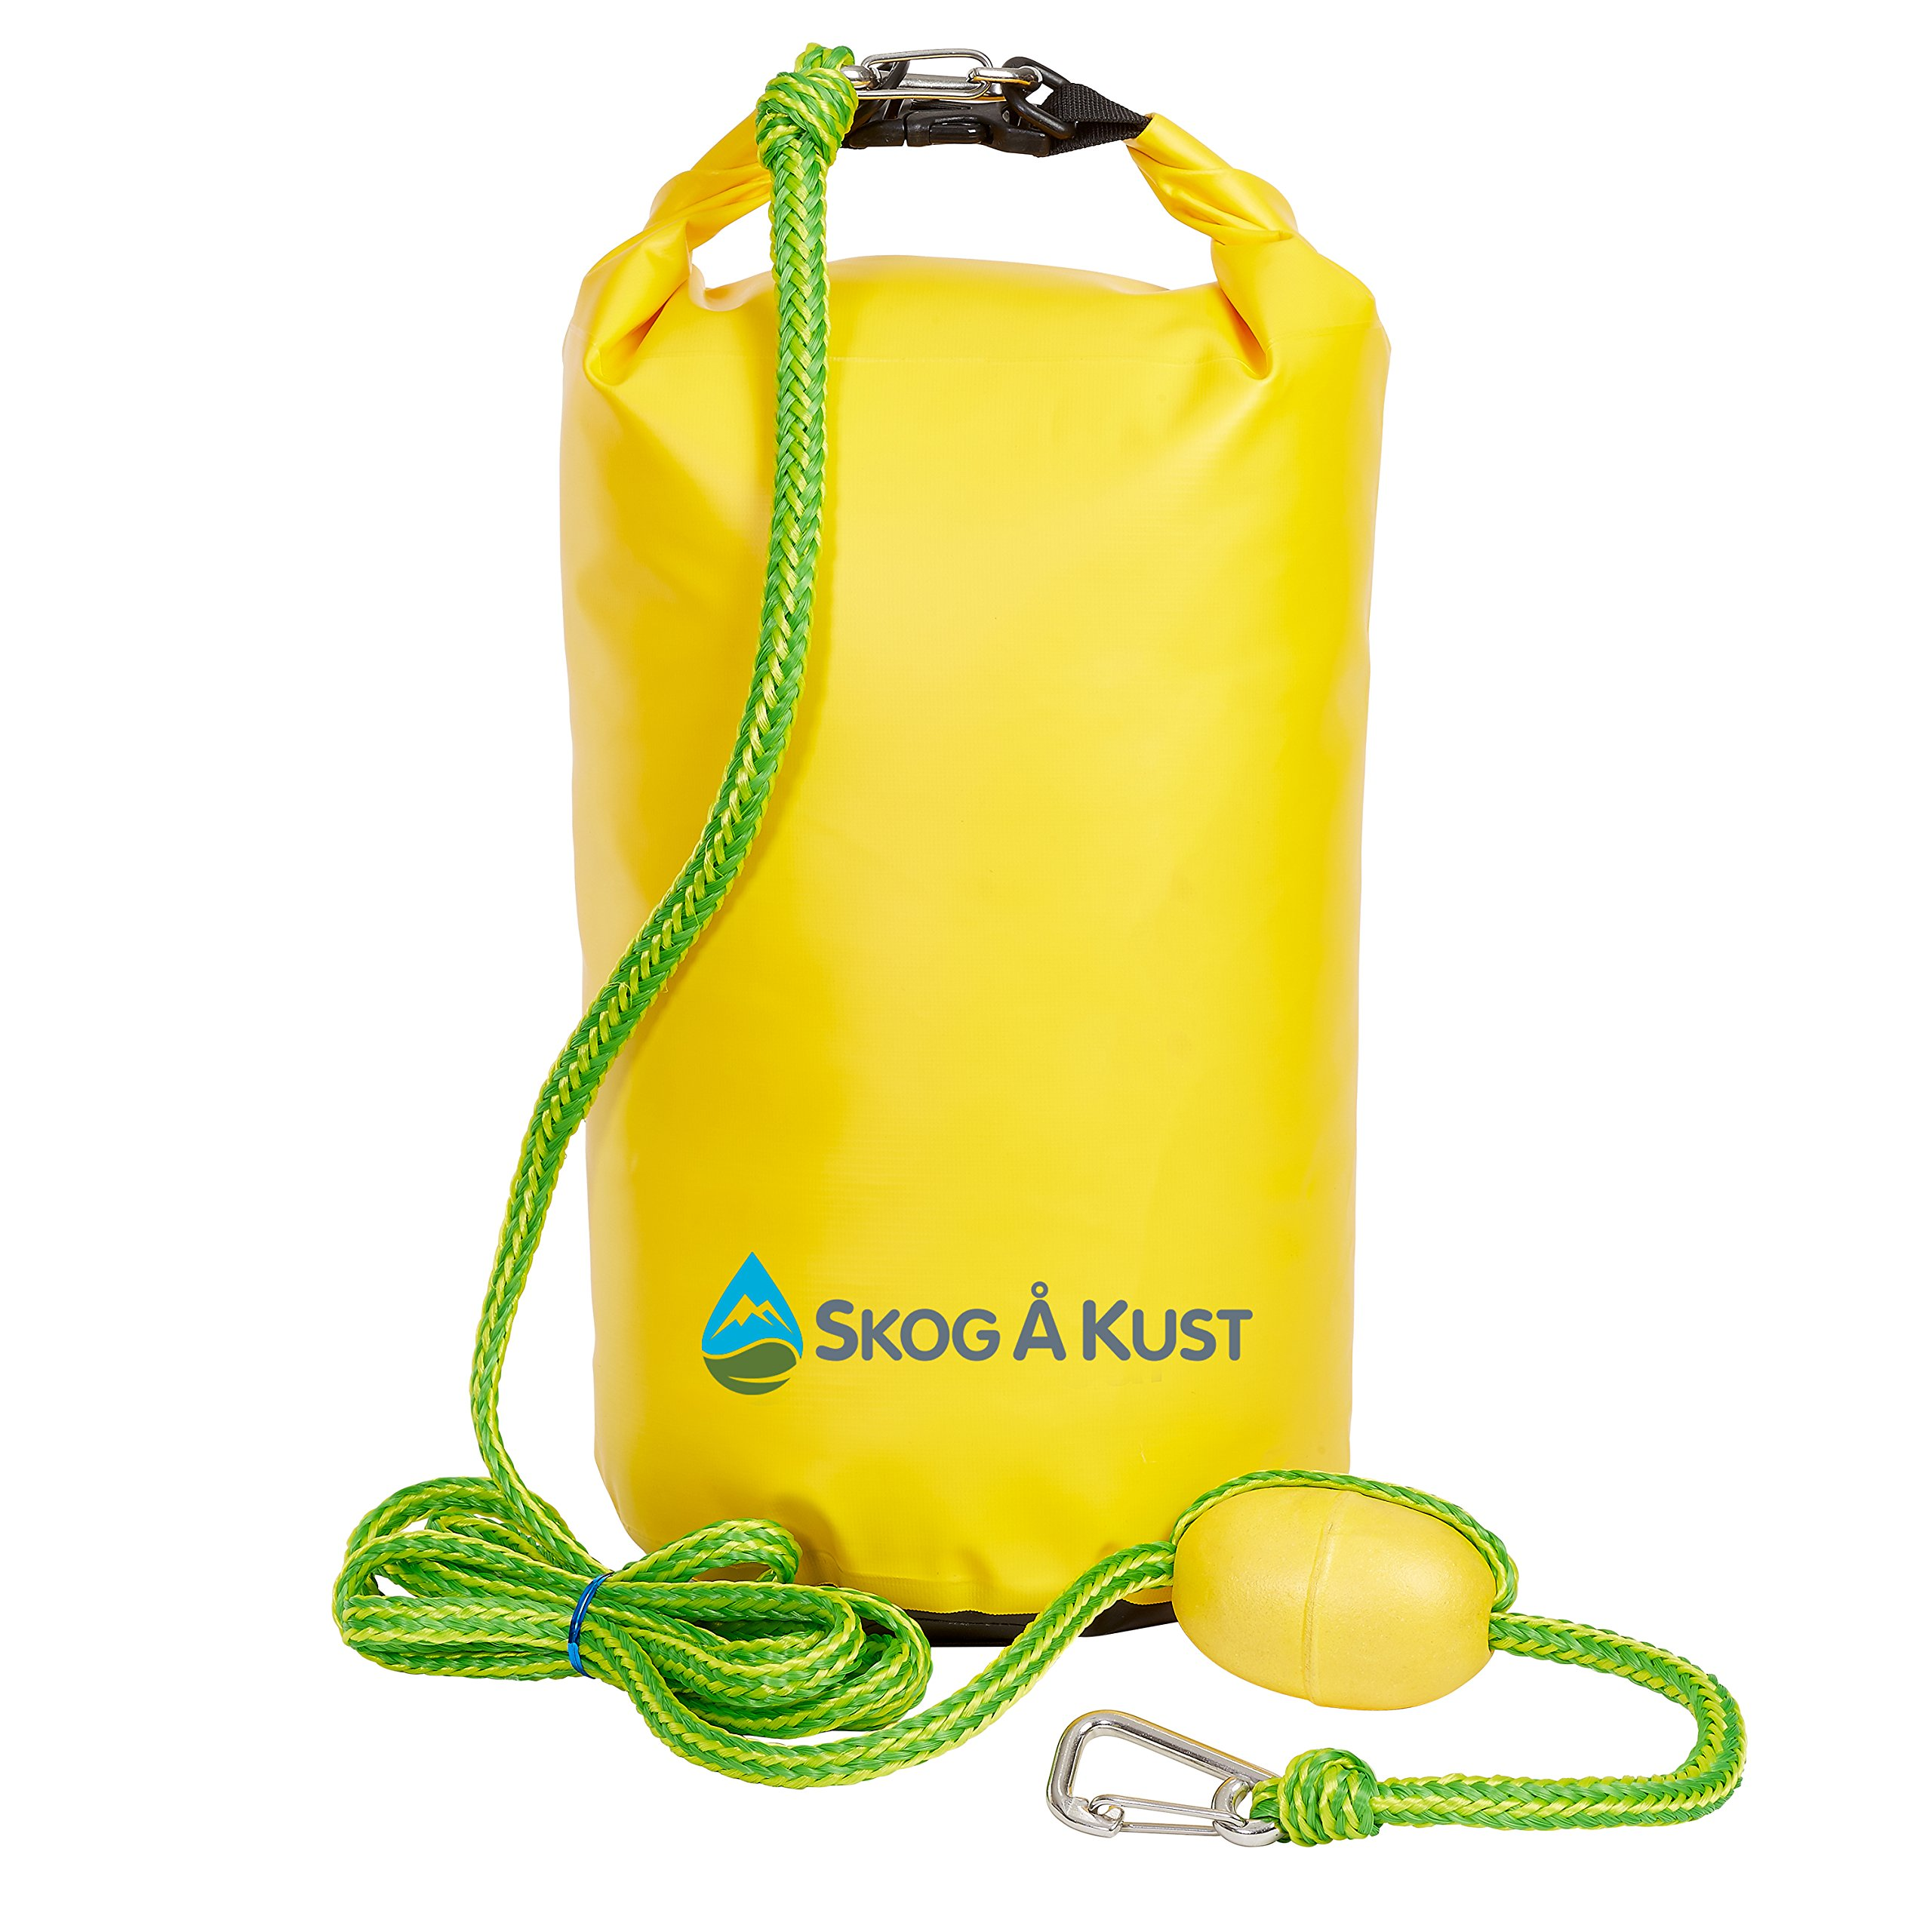 SandSak Premium PWC Sand Anchor   Heavy Duty 500D PVC   High Visibility Braided Rope & Buoy   Stainless Steel Clips   Ideal For Kayaks & SUP